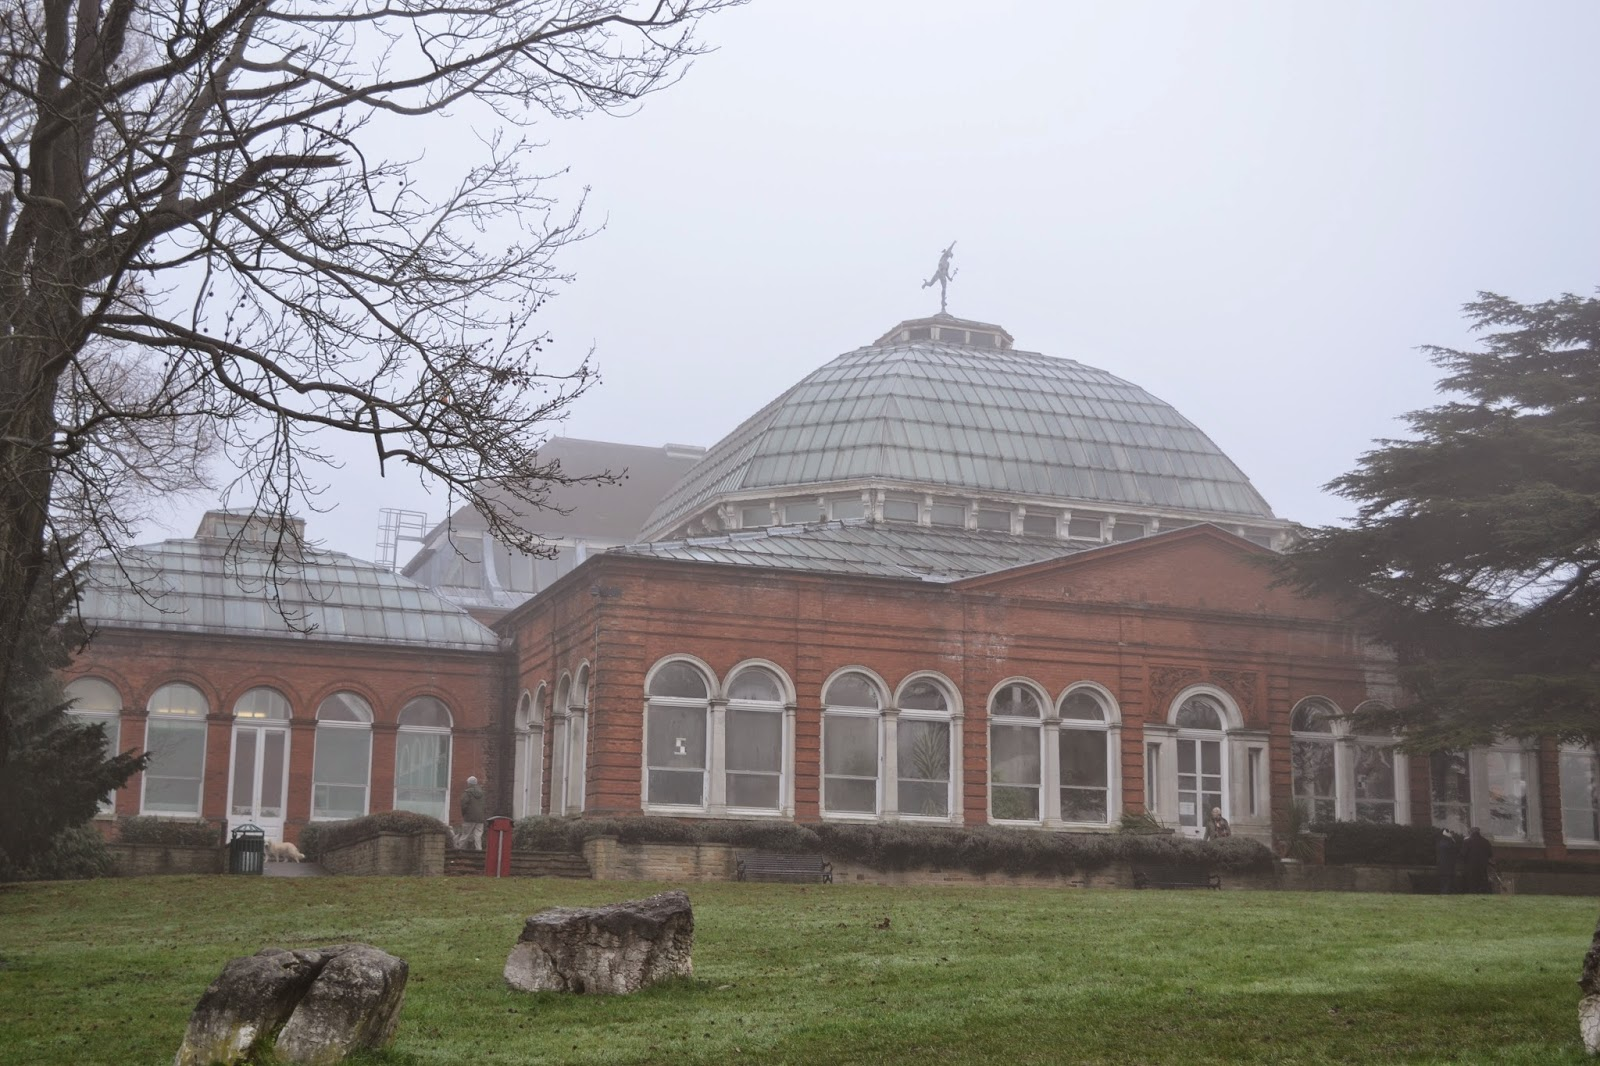 Victorian Avery hill winter garden in the fog, Eltham, London